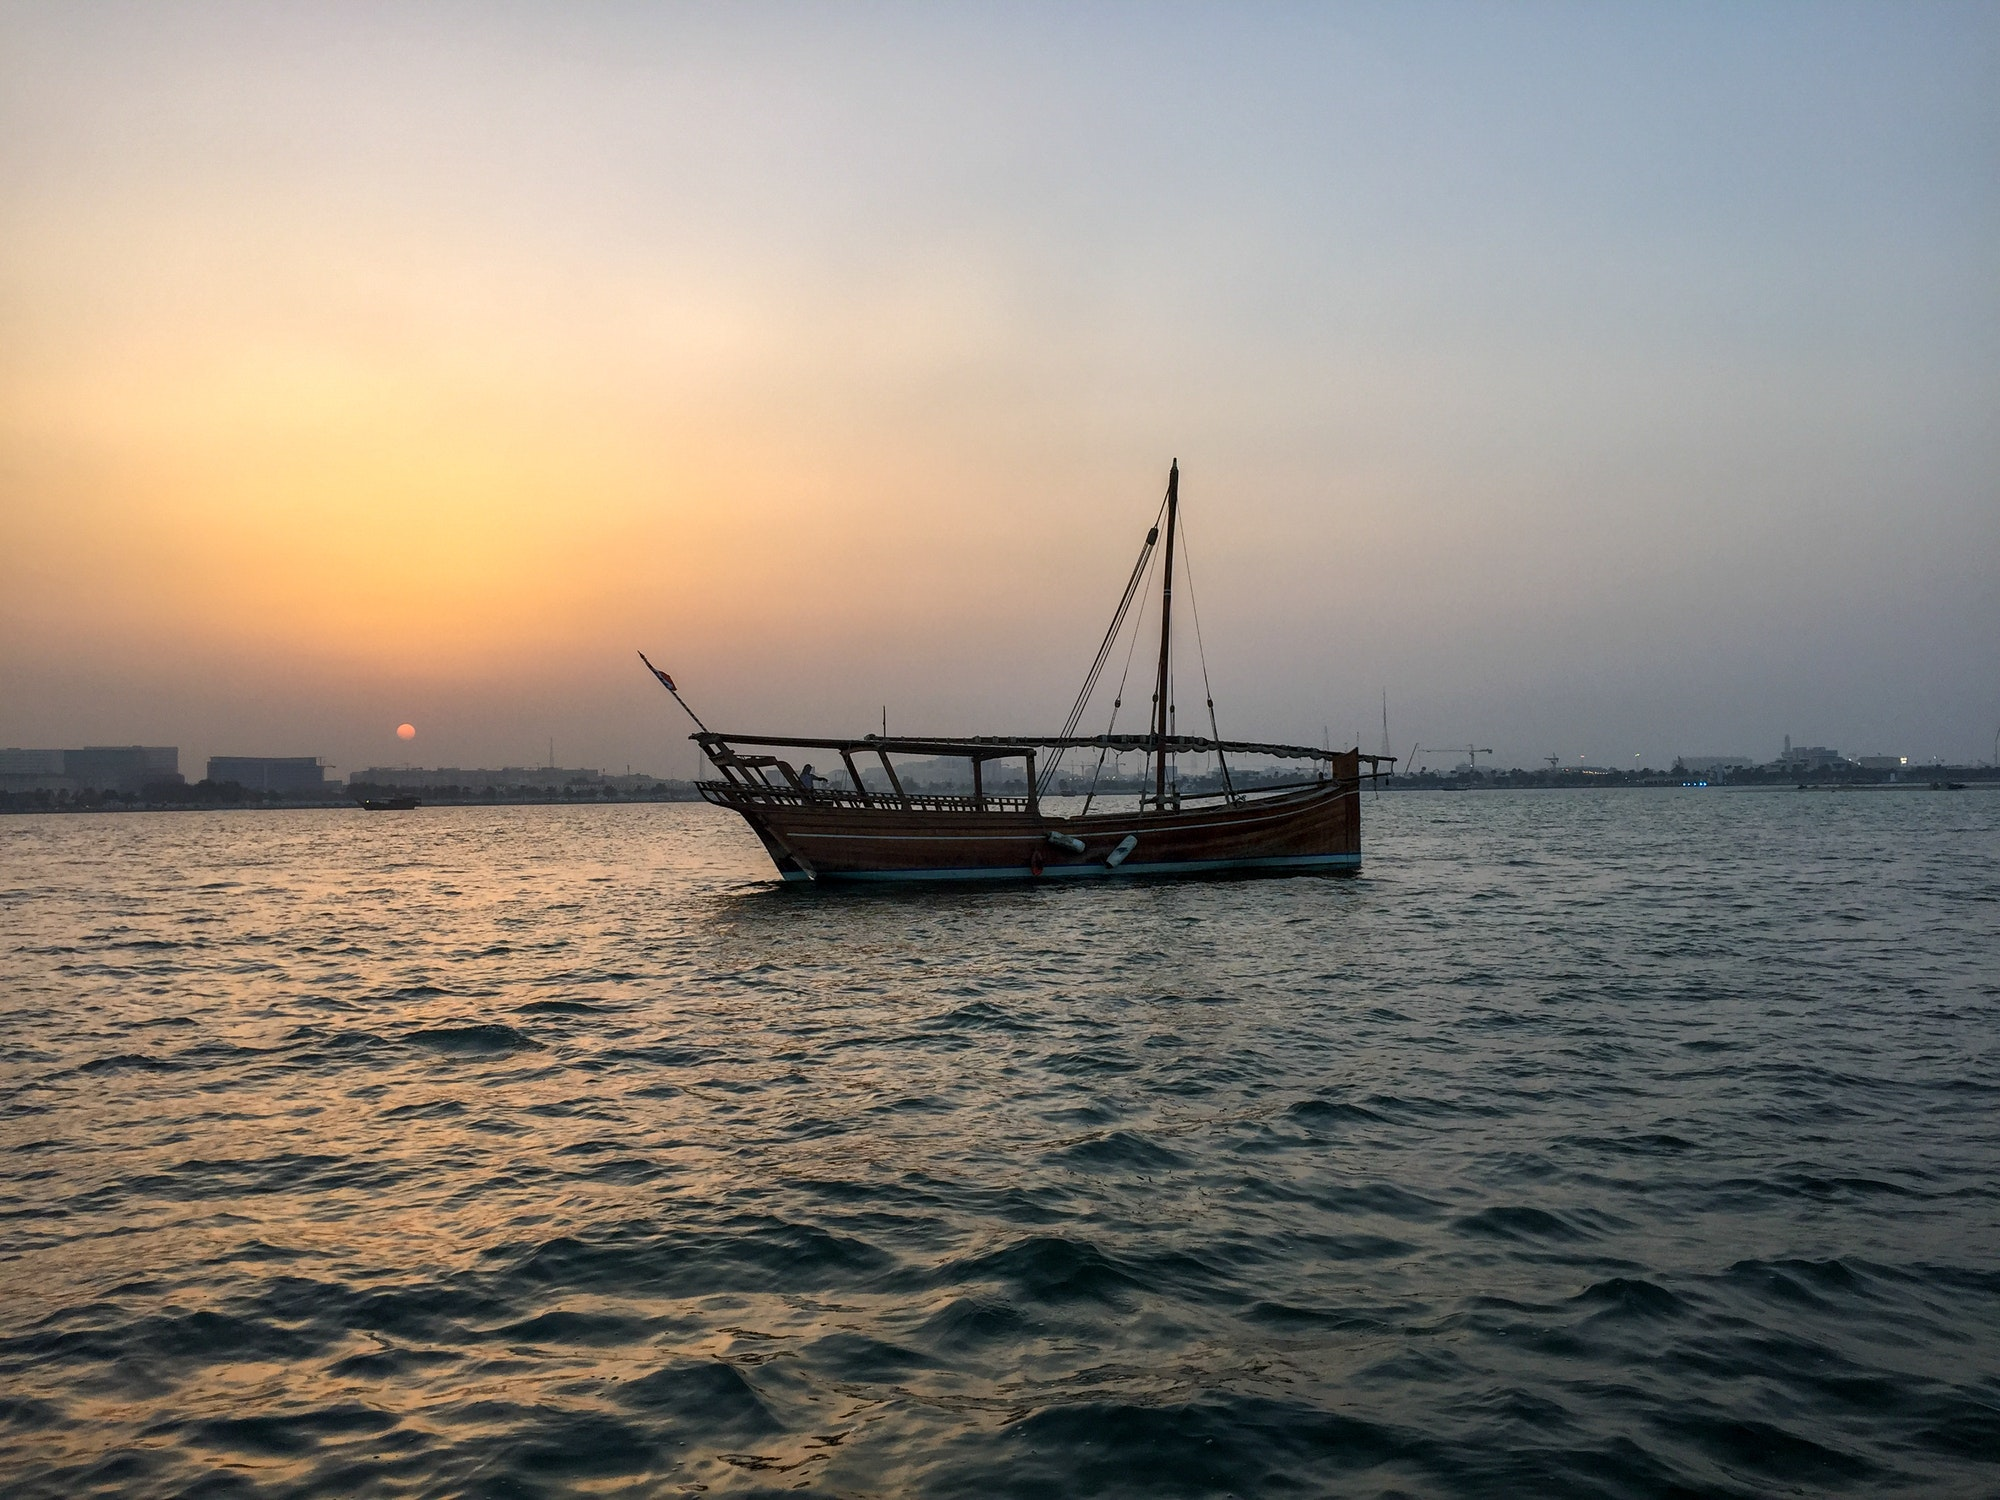 Traditional Dhow at sea of Qatar. Sea. Ocean. Travel. Traveling. Golden hour